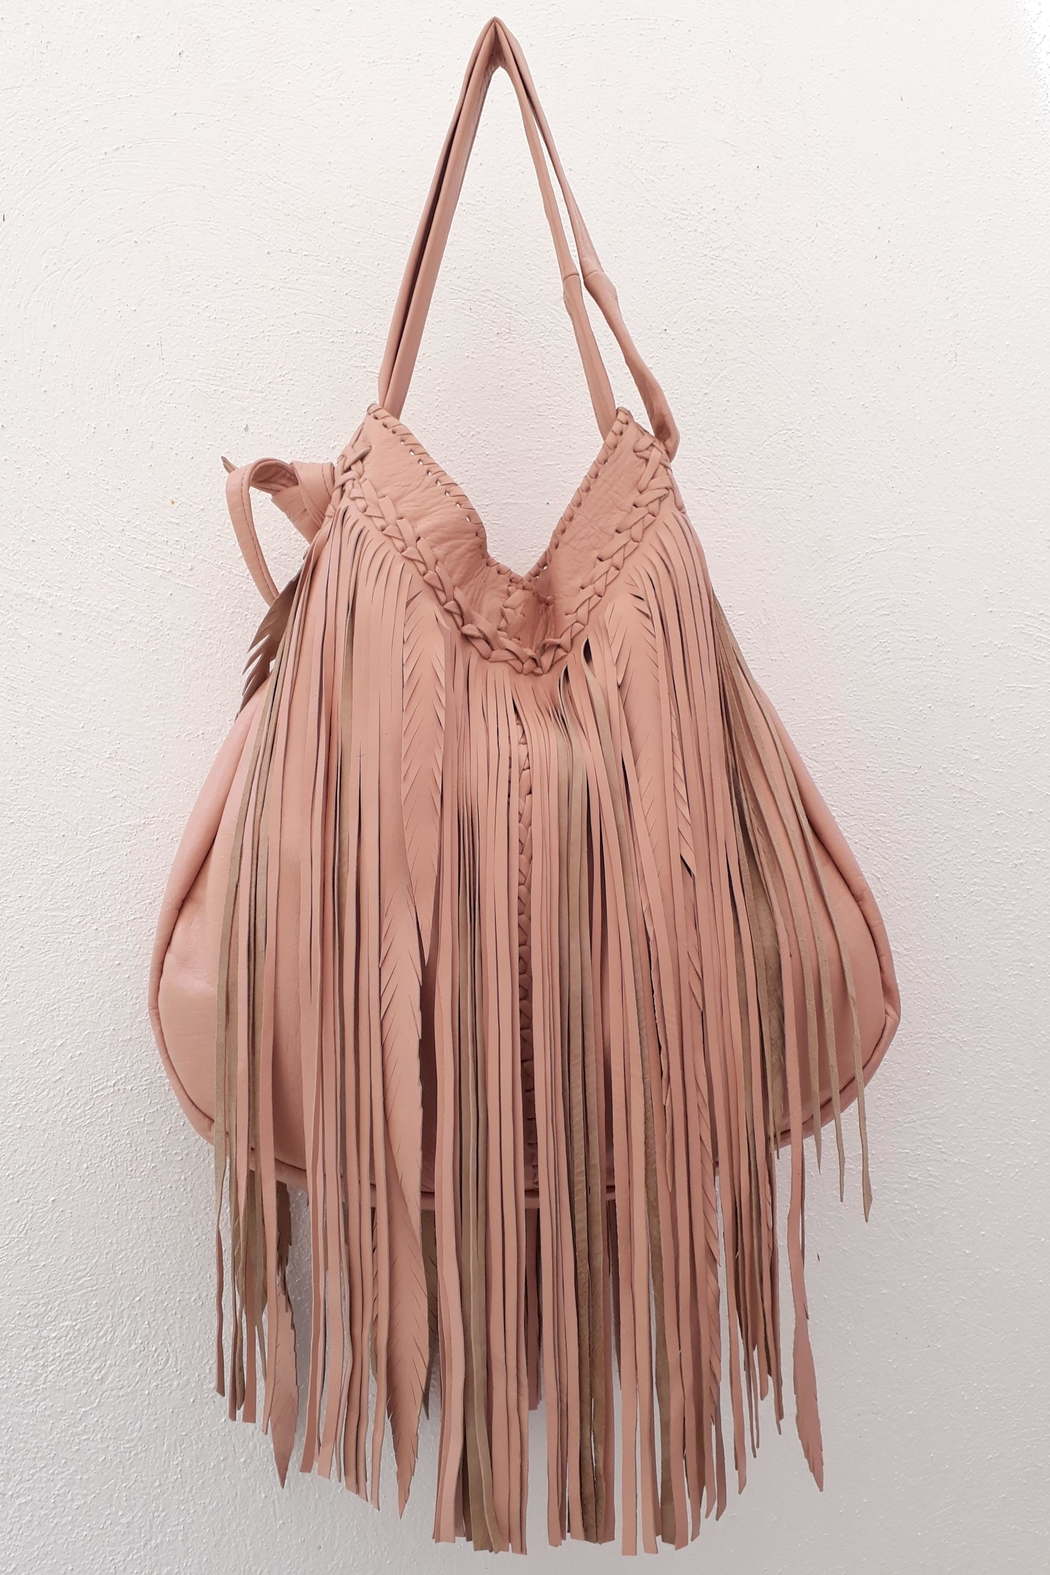 Areias Leather Bebe Pink Bag - Main Image